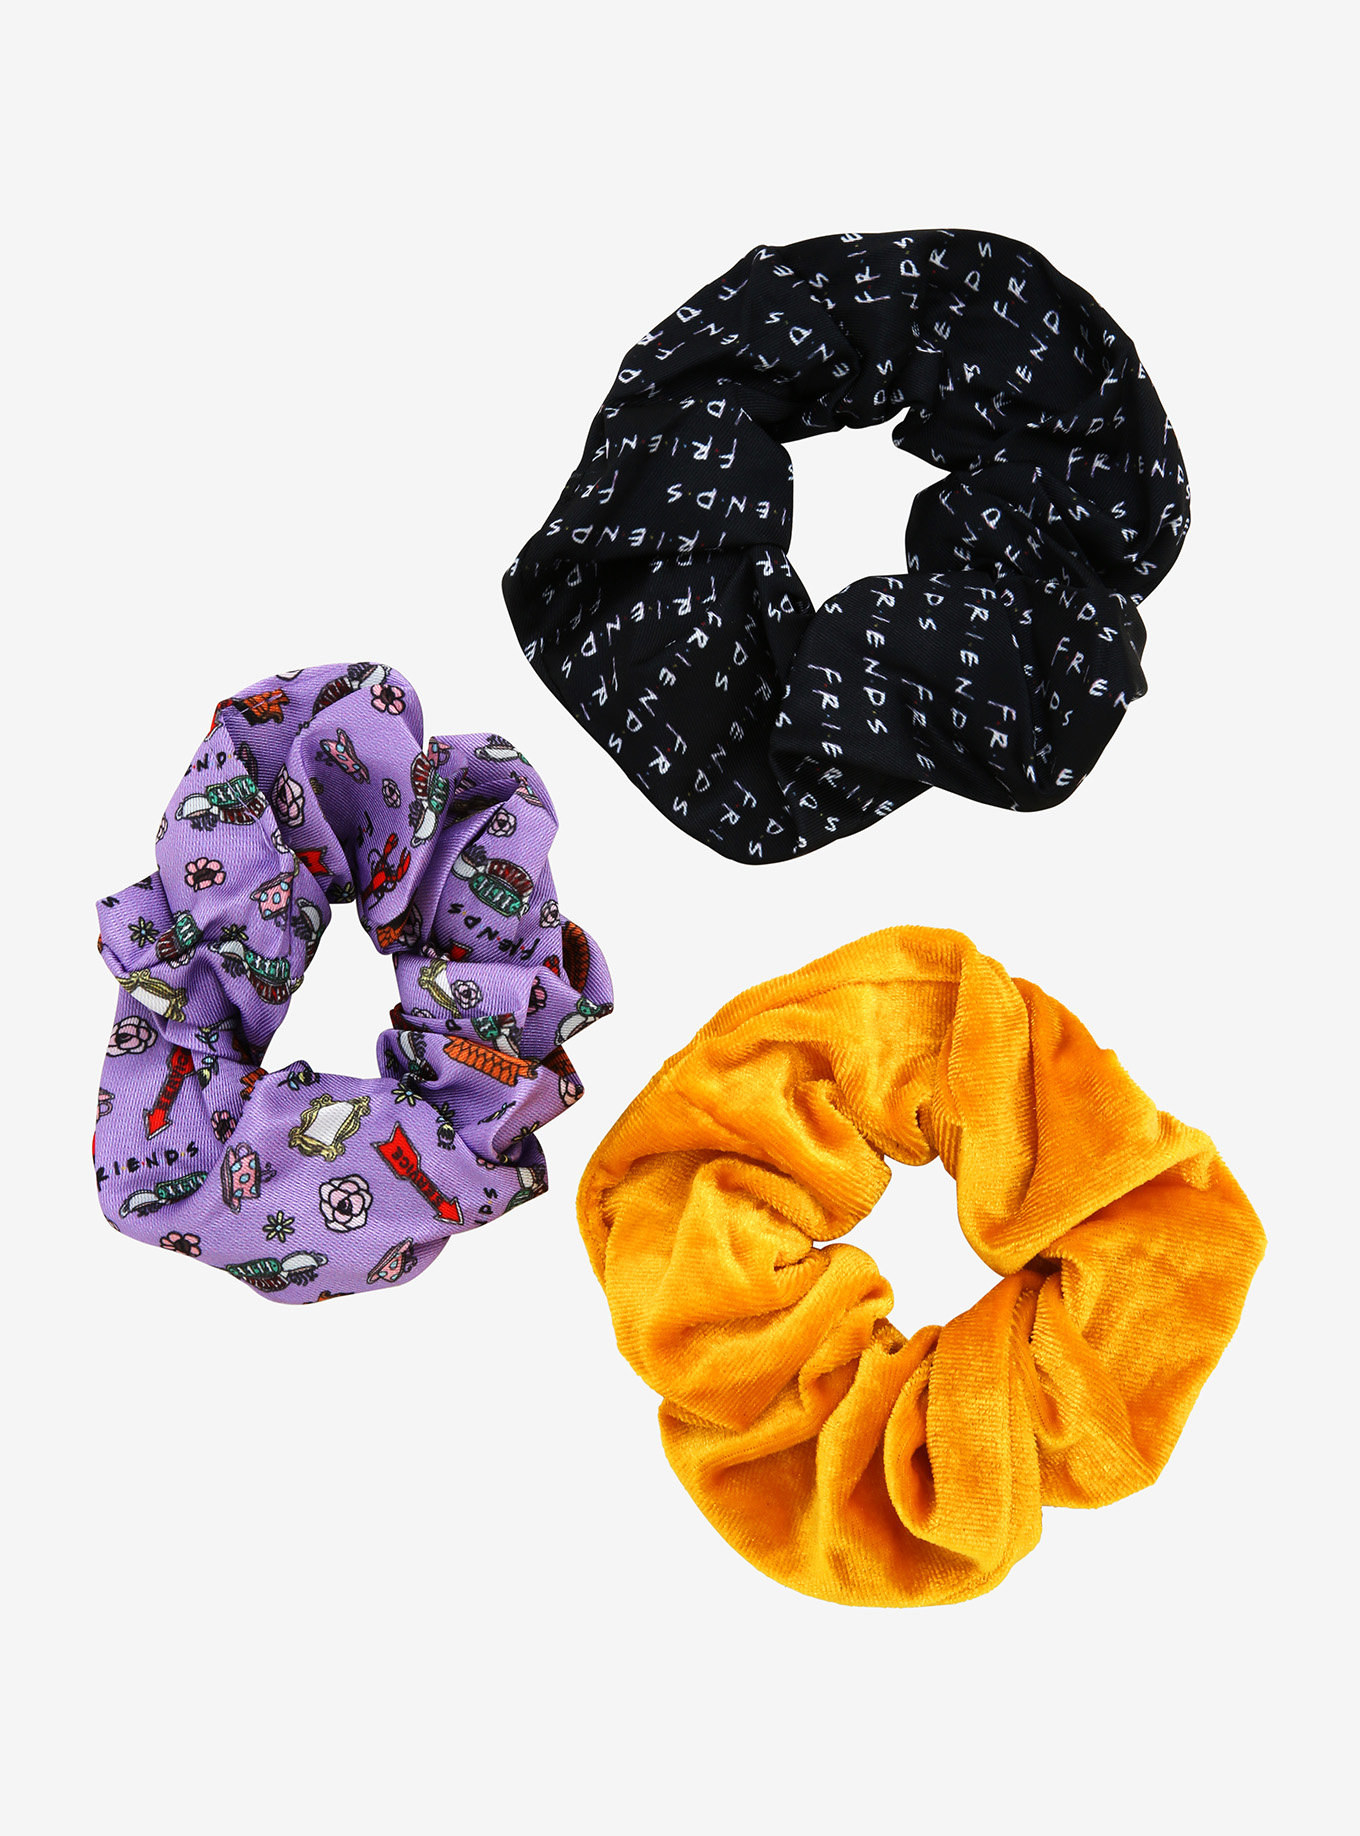 a black scrunchie with the friends logo all over it, a purple one with different icons from the show, and a yellow velvet scrunchie